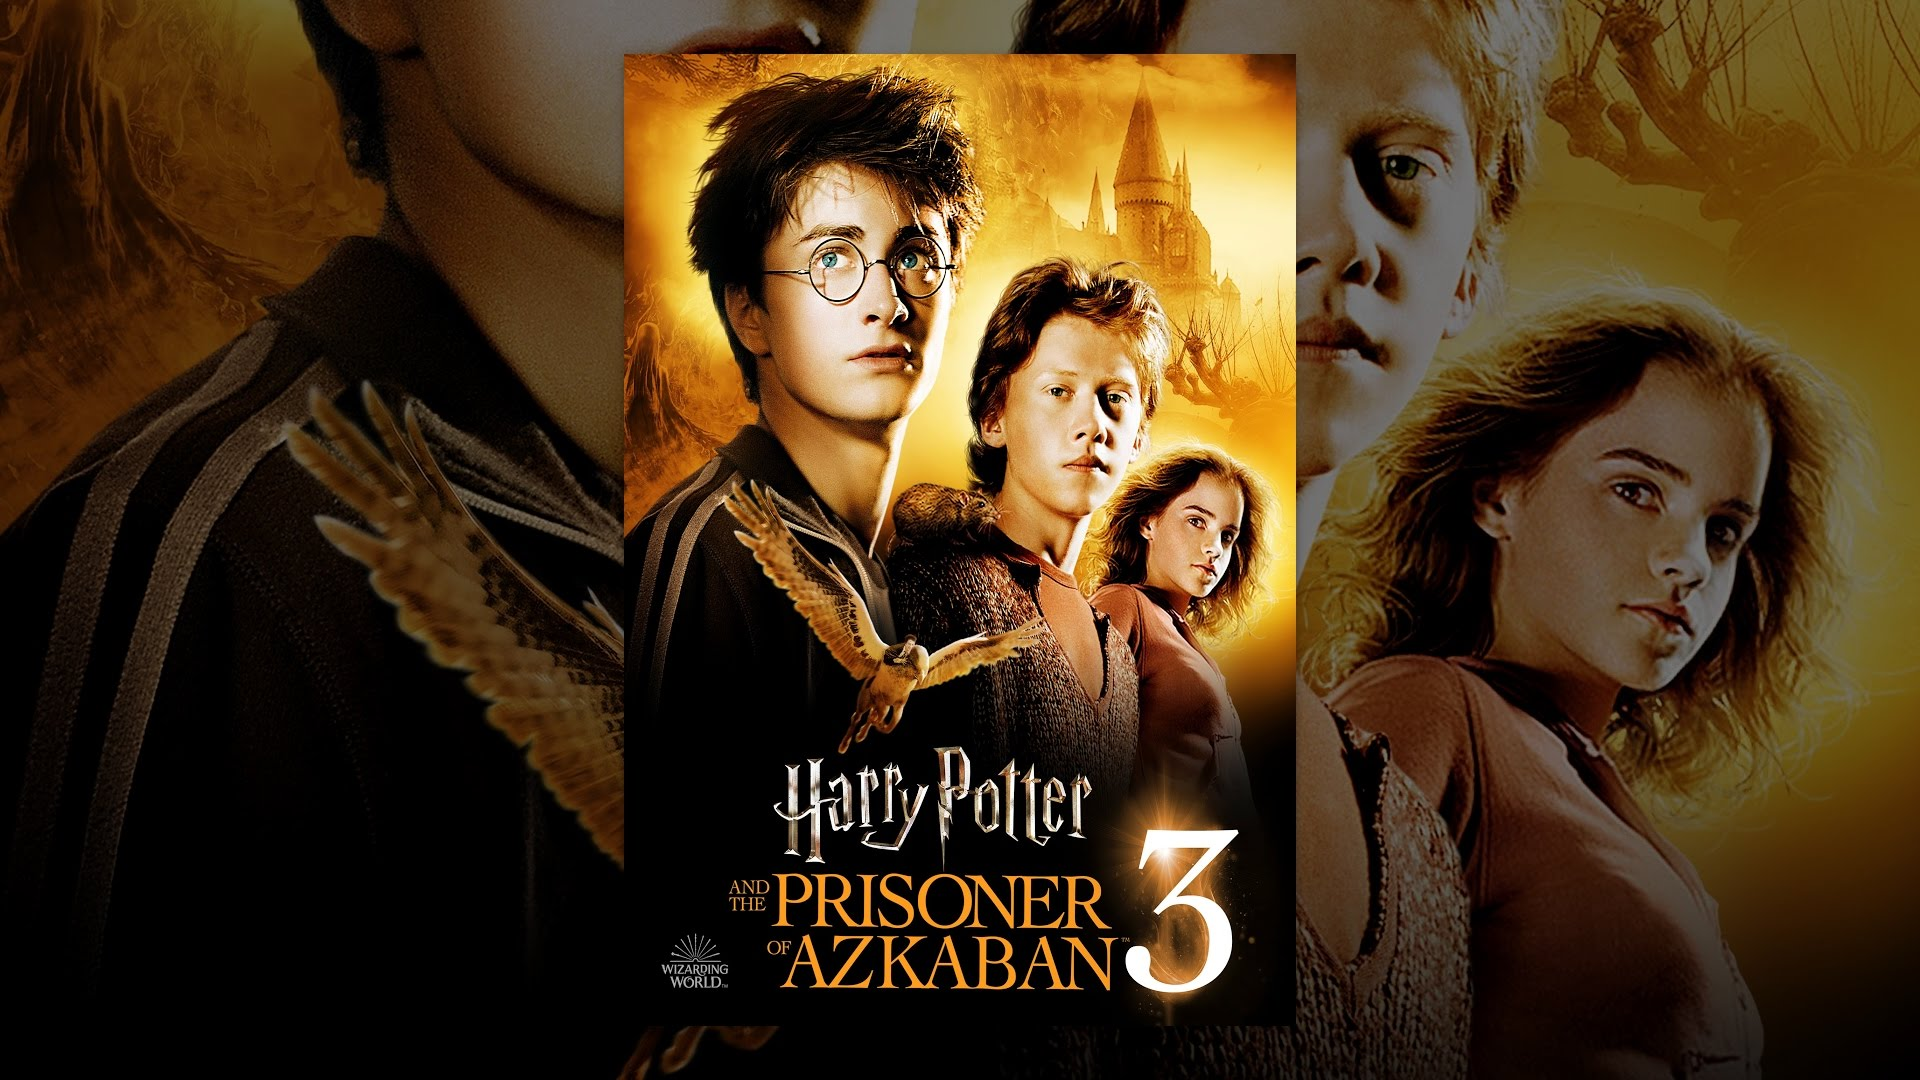 Download Harry Potter and the Prisoner of Azkaban